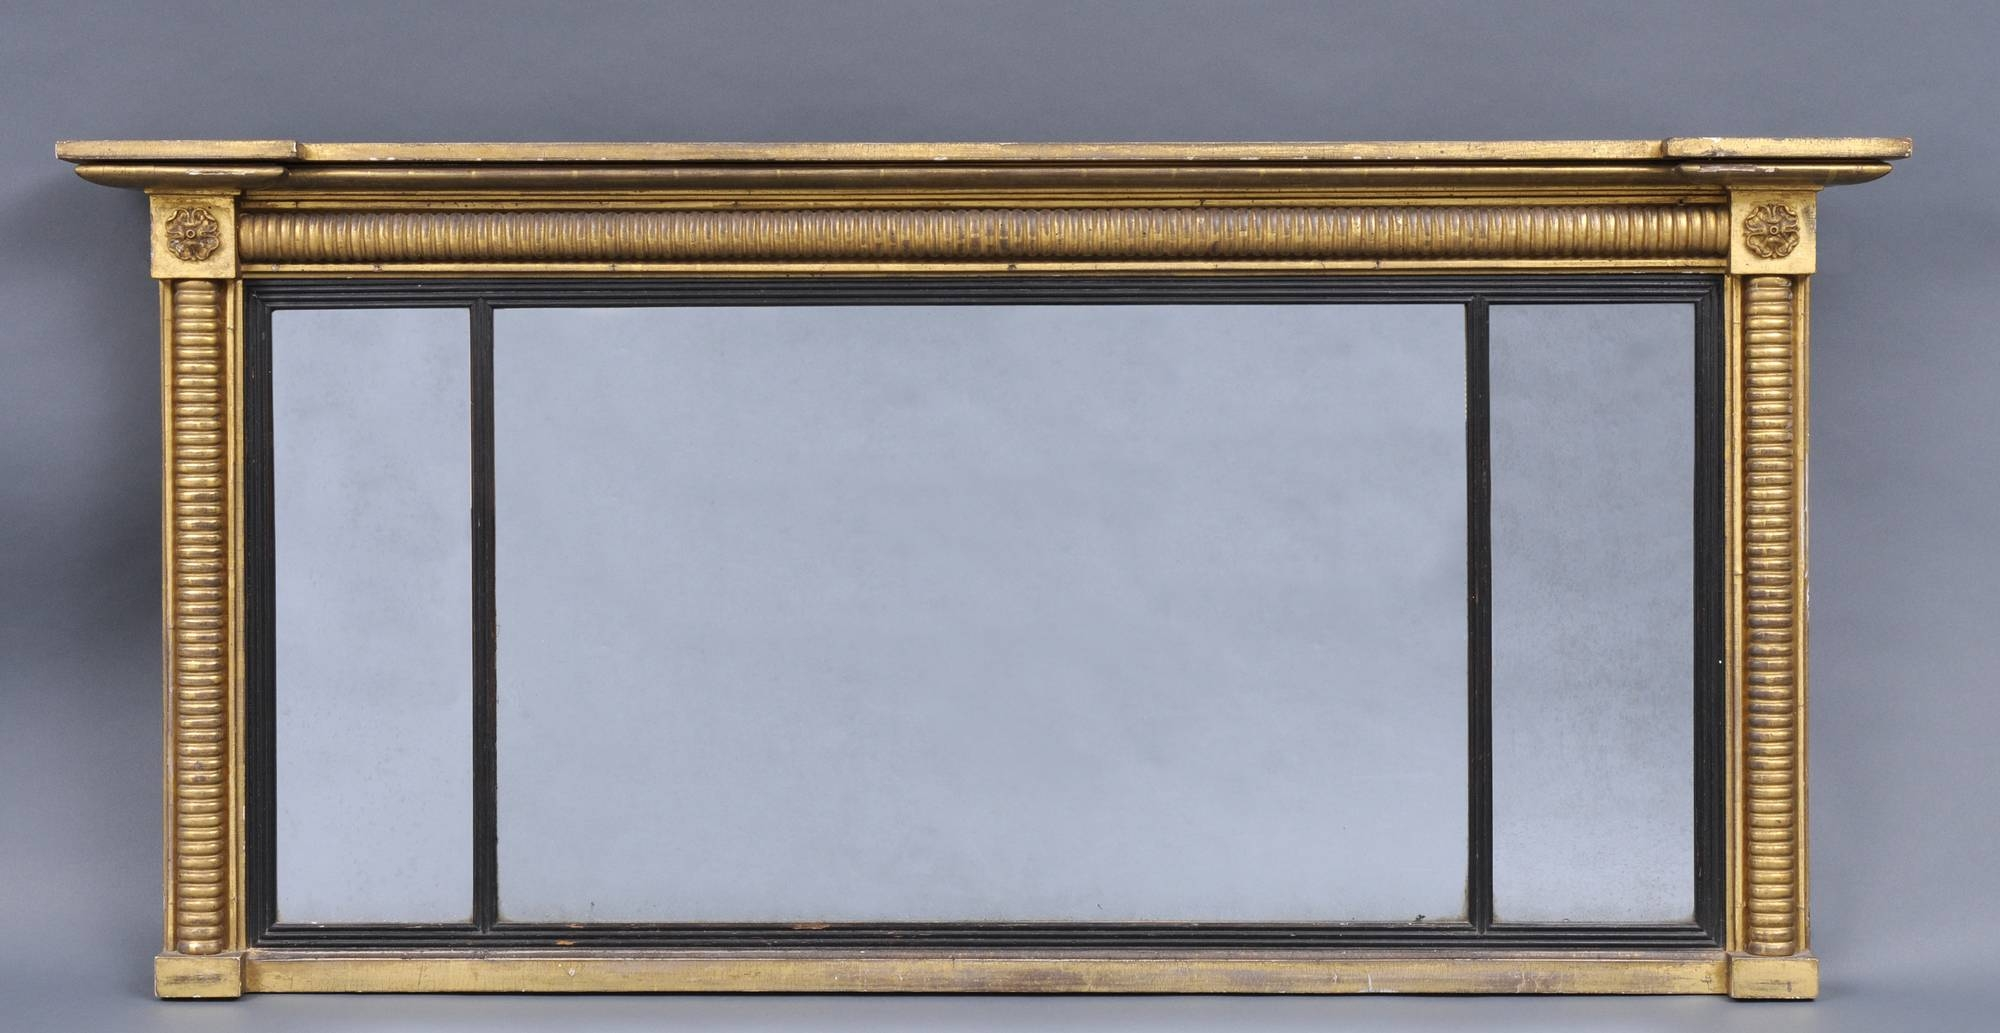 Overmantle Mirror. Ornate Cream Crested Overmantel Mirror 112 X intended for Vintage Overmantle Mirrors (Image 18 of 25)